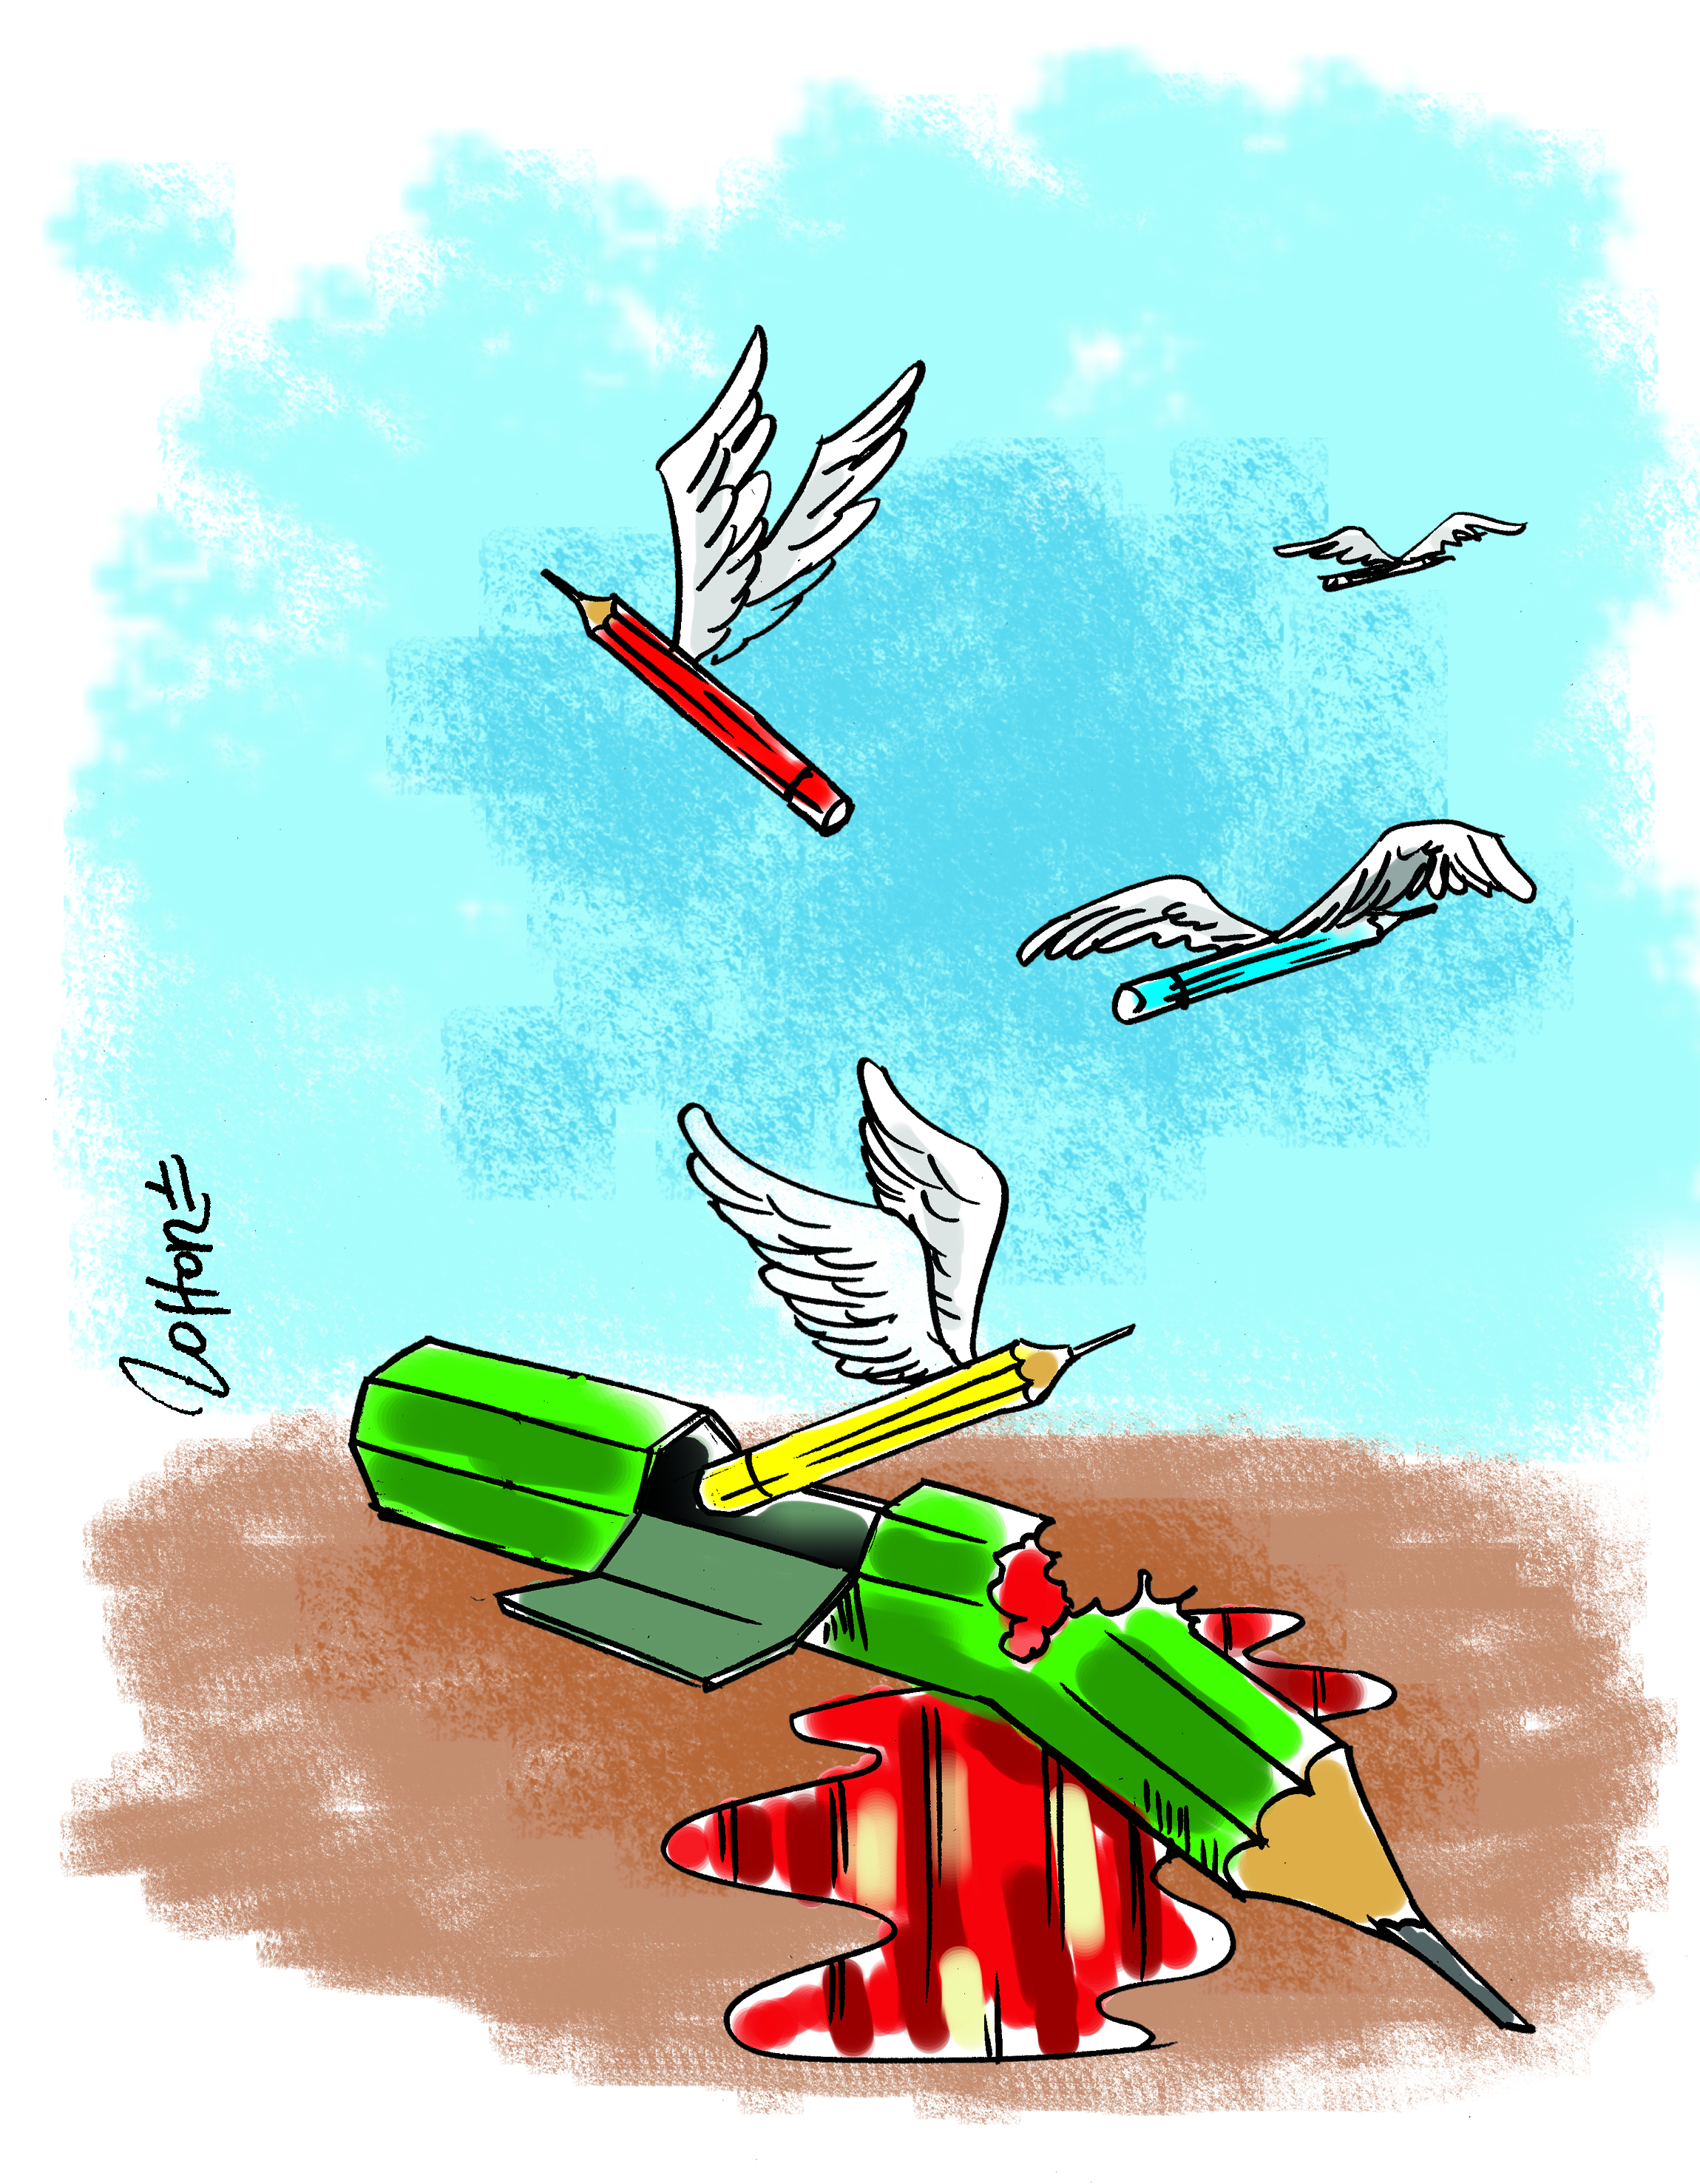 ZOHORE-COTE D'IVOIRE-CARTOONING FOR PEACE